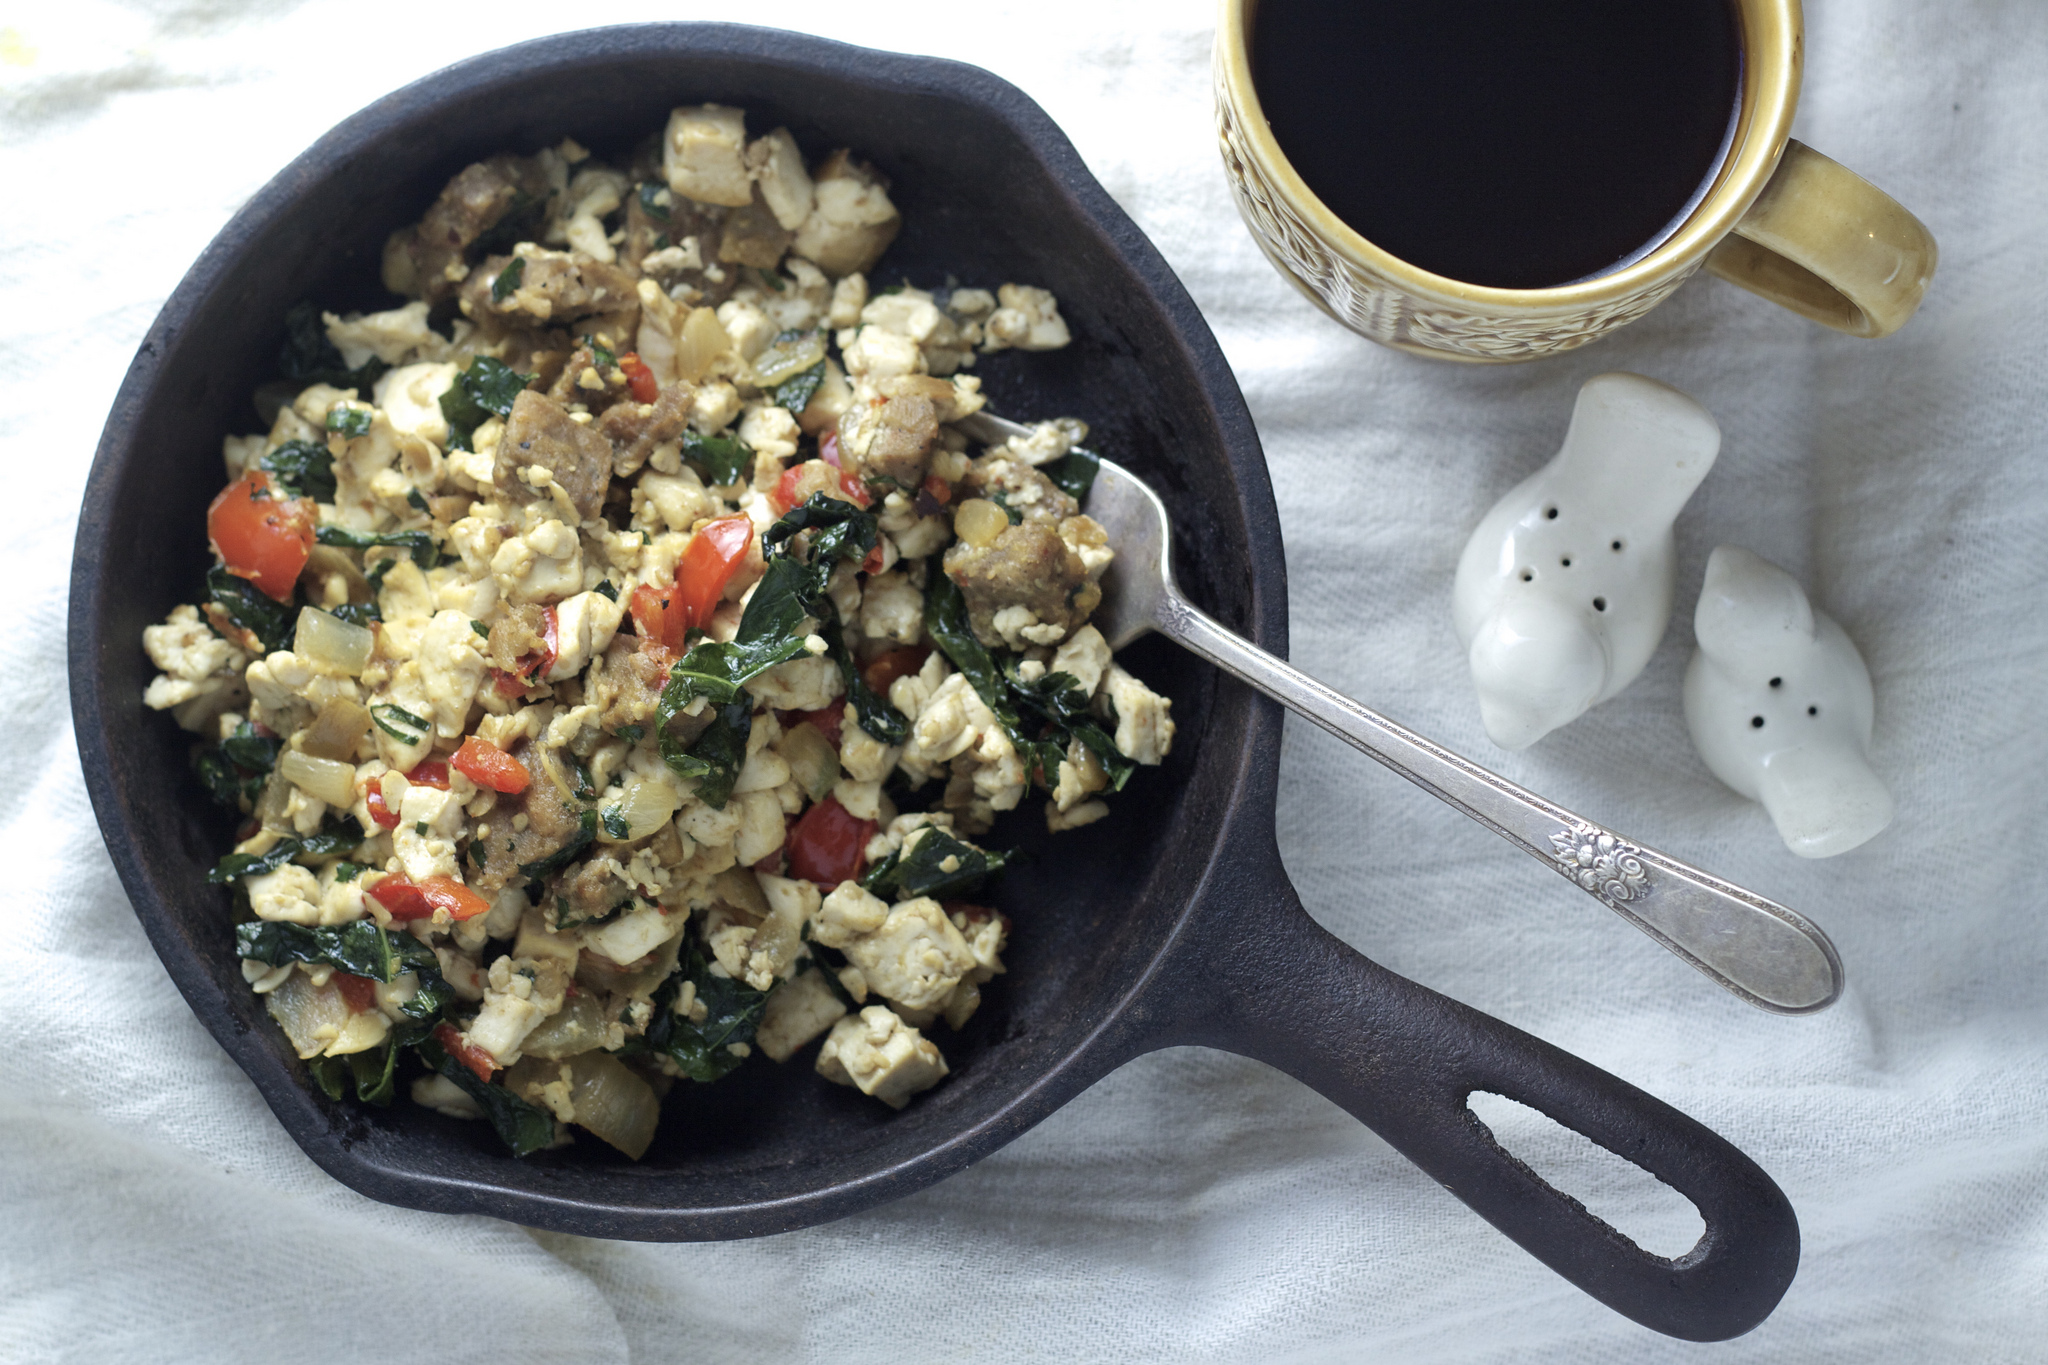 Vegan Vegetable and Sausage Tofu Scramble by the Bored Vegetarian